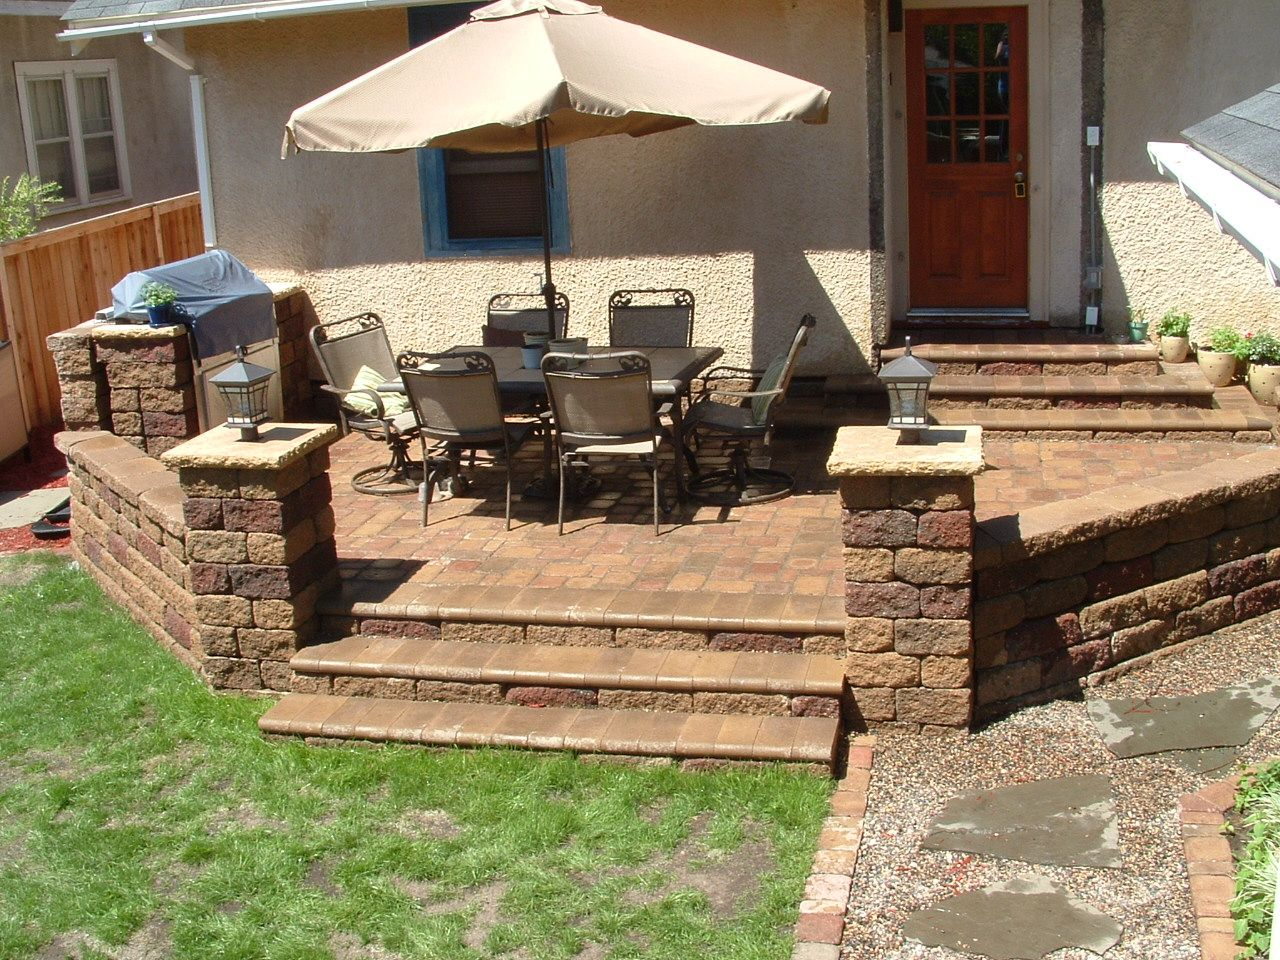 Raised patio ideas - After You D Hardly Recognize The Old Yard Now With A Stylish Raised Patio And Outdoor Kitchen Built On Versa Lok And Covered With Willow Creek Pavers